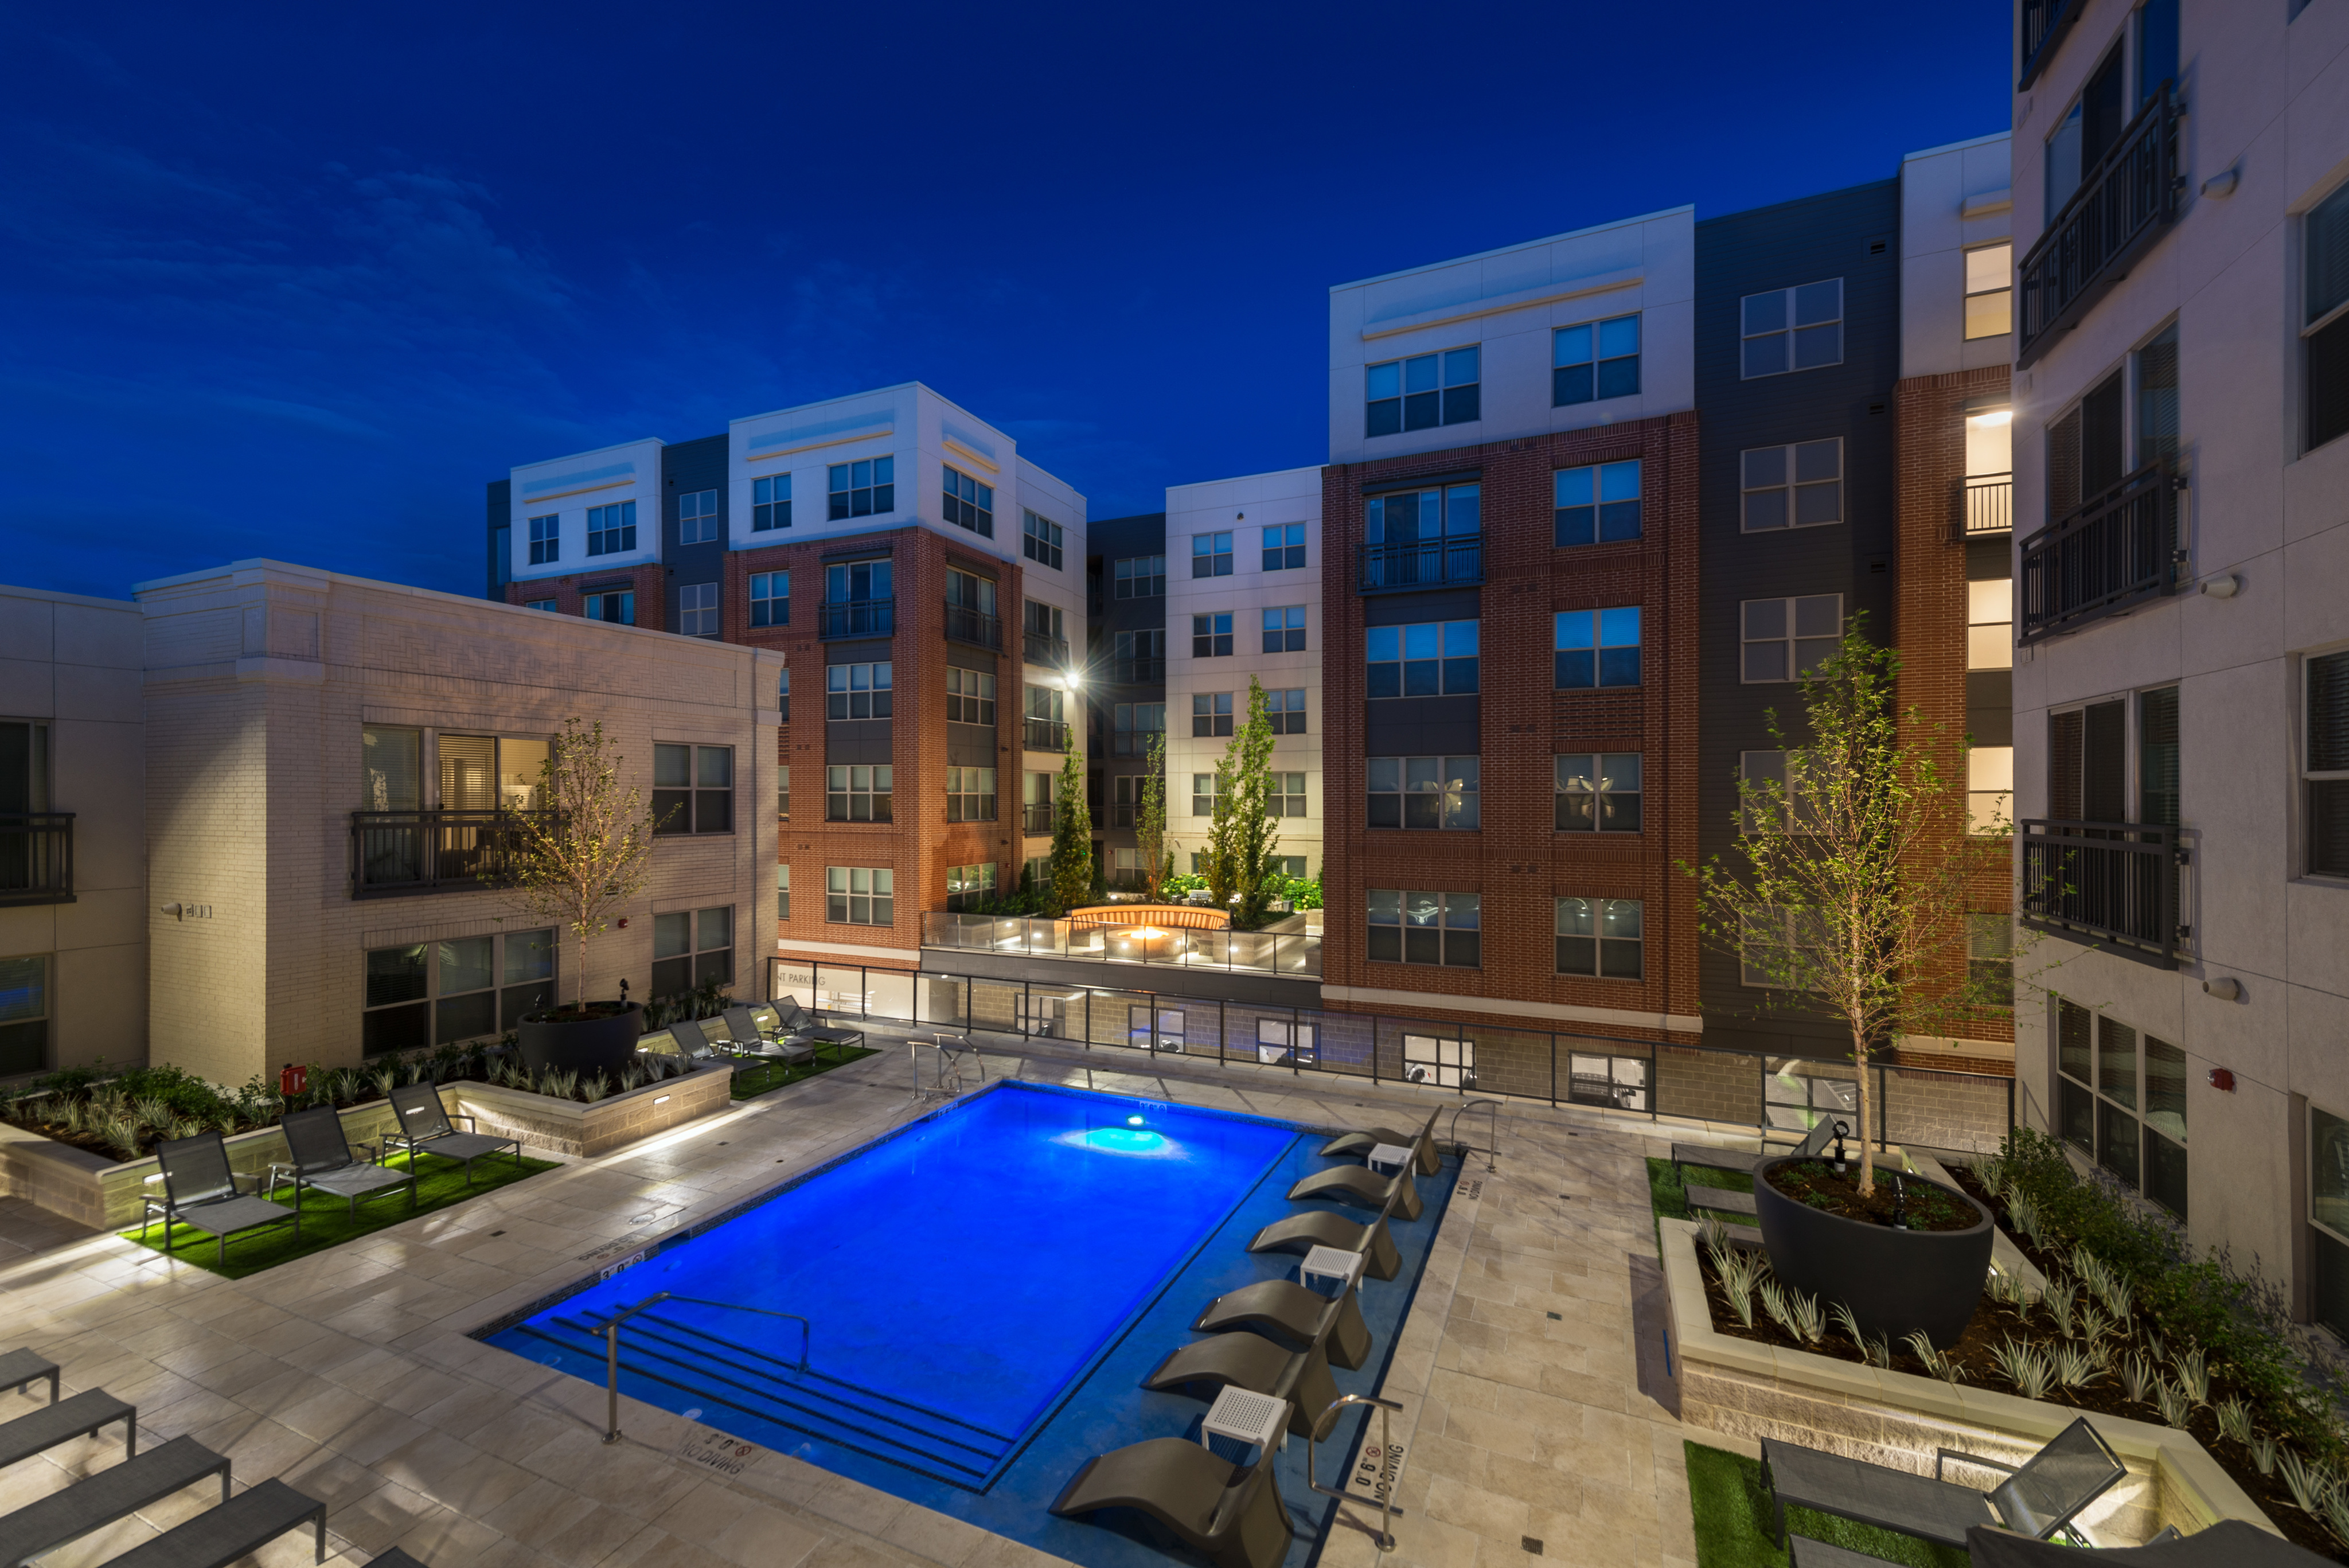 Image of Resort-style outdoor pool with spa deck and in-pool lounging for Hanover Platt Park